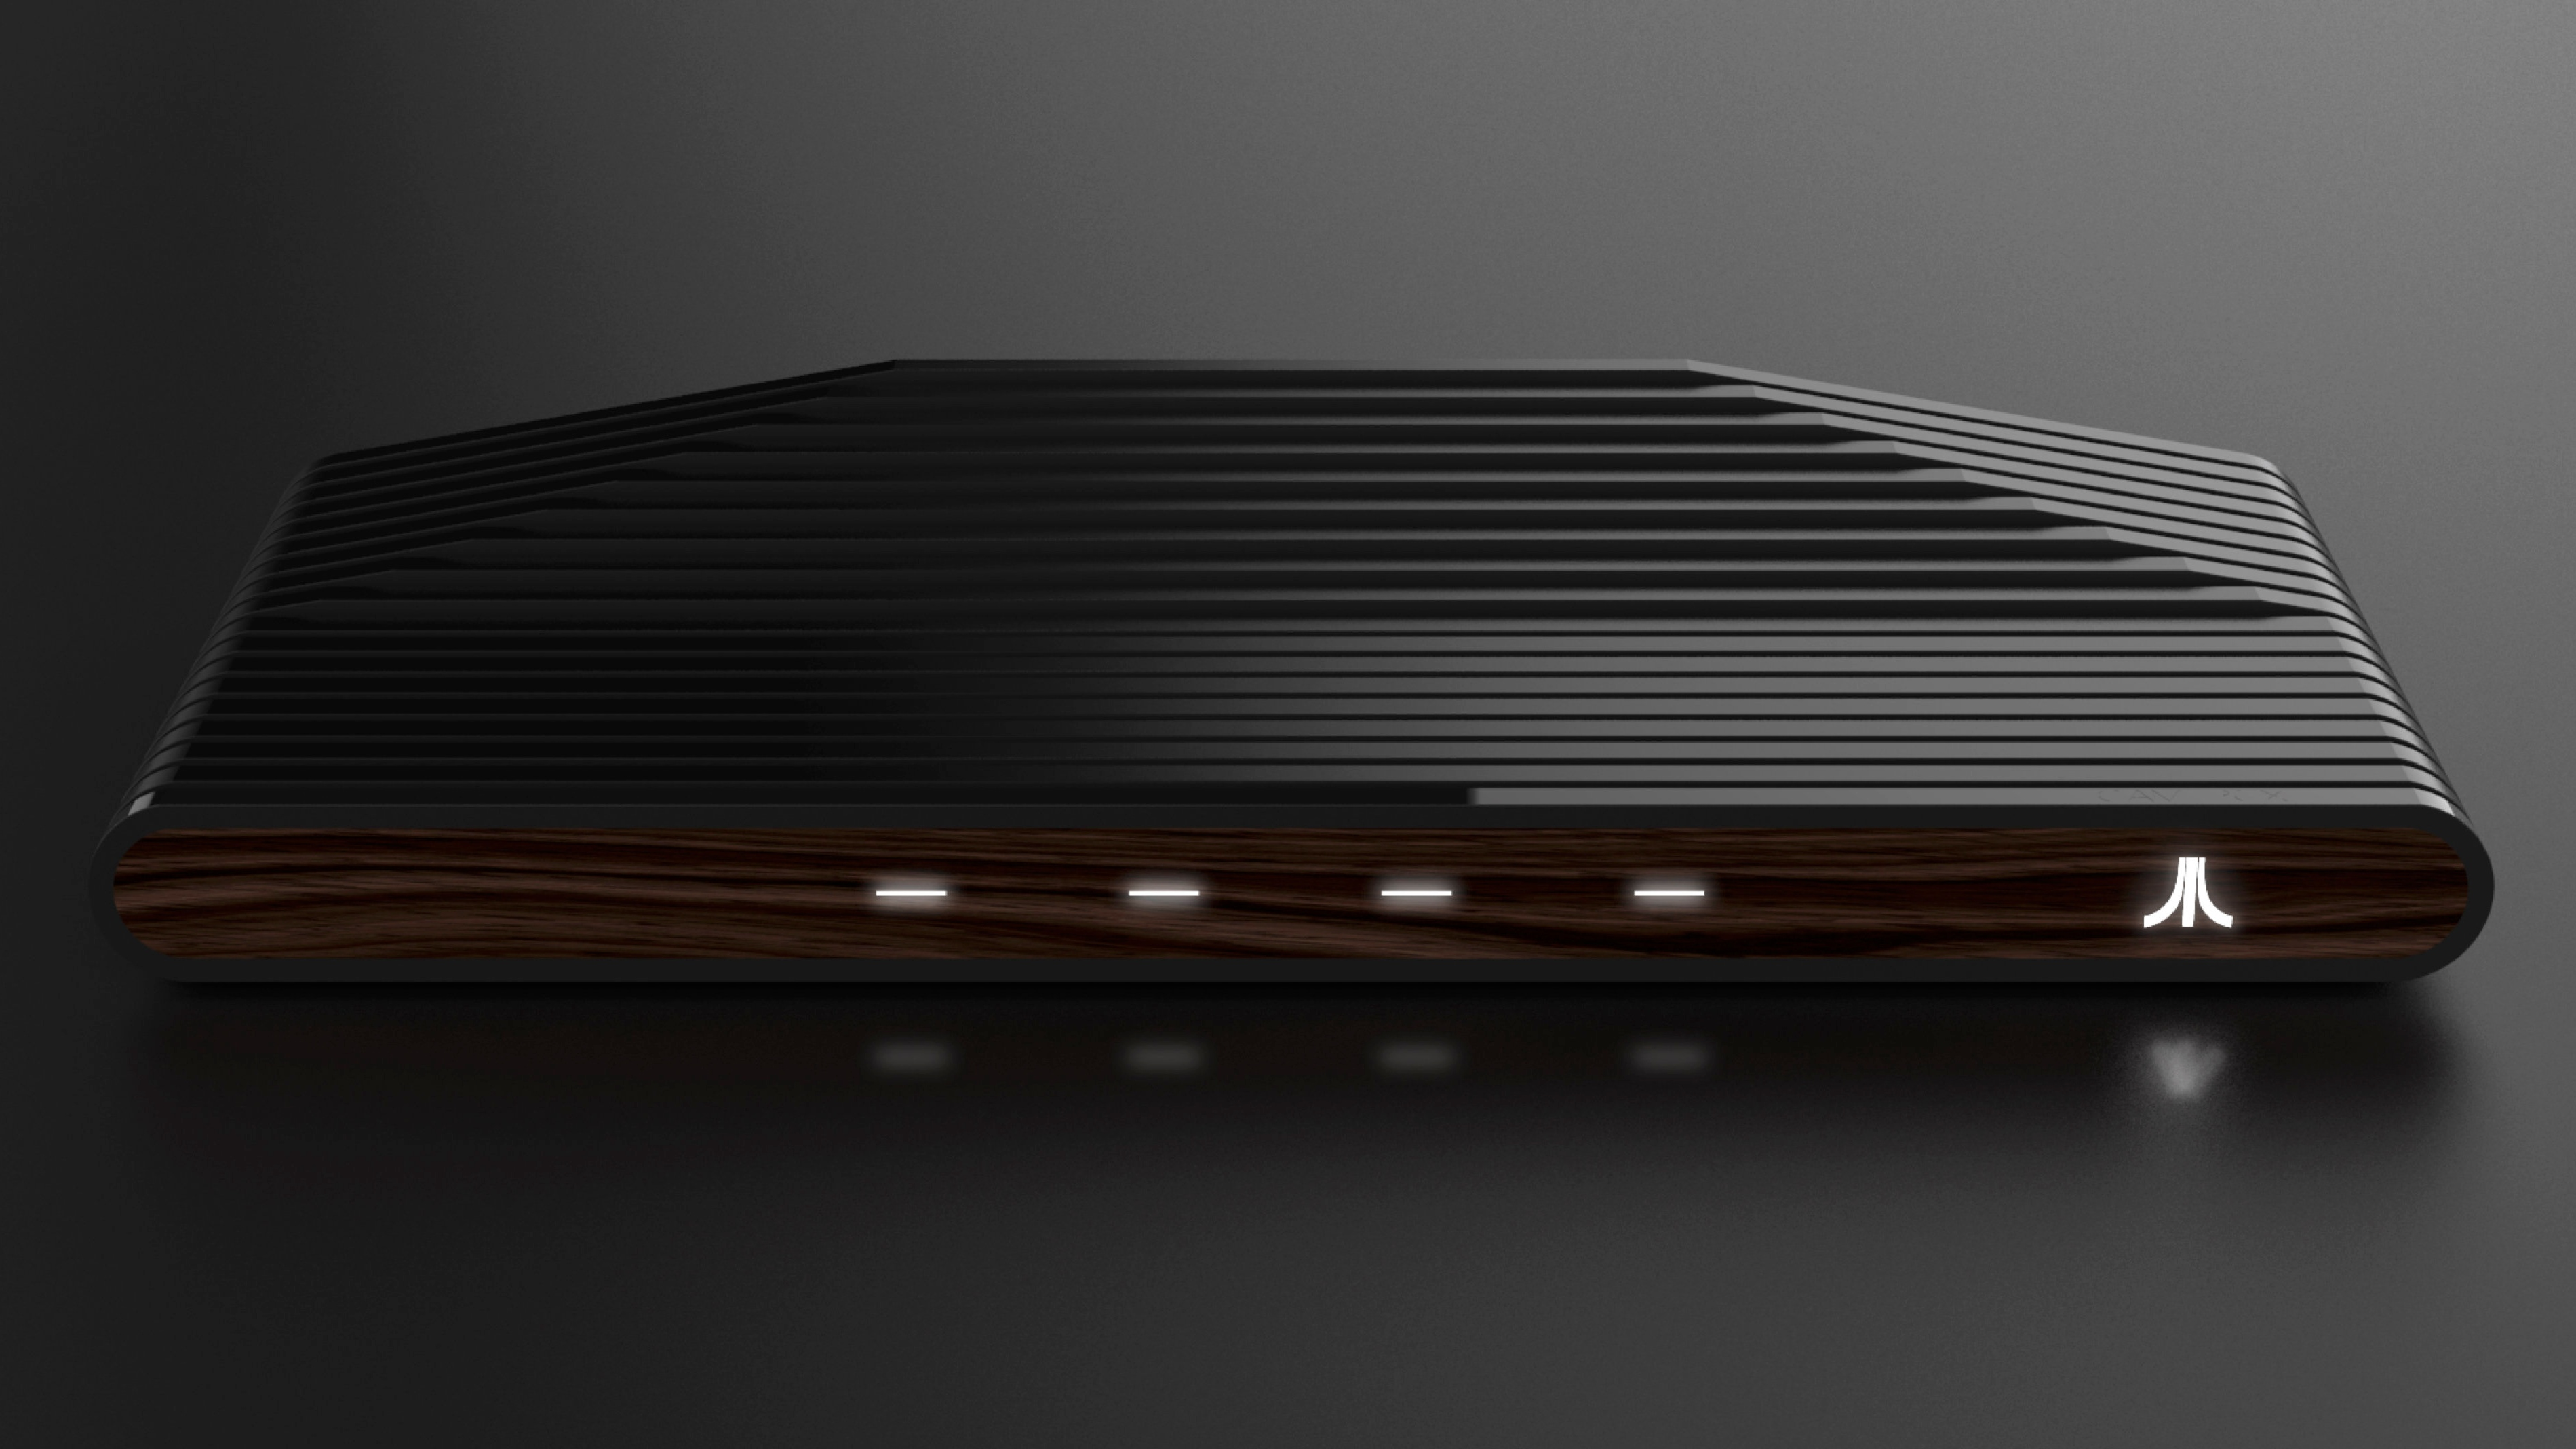 Atari VCS: everything you need to know about Atari's comeback console